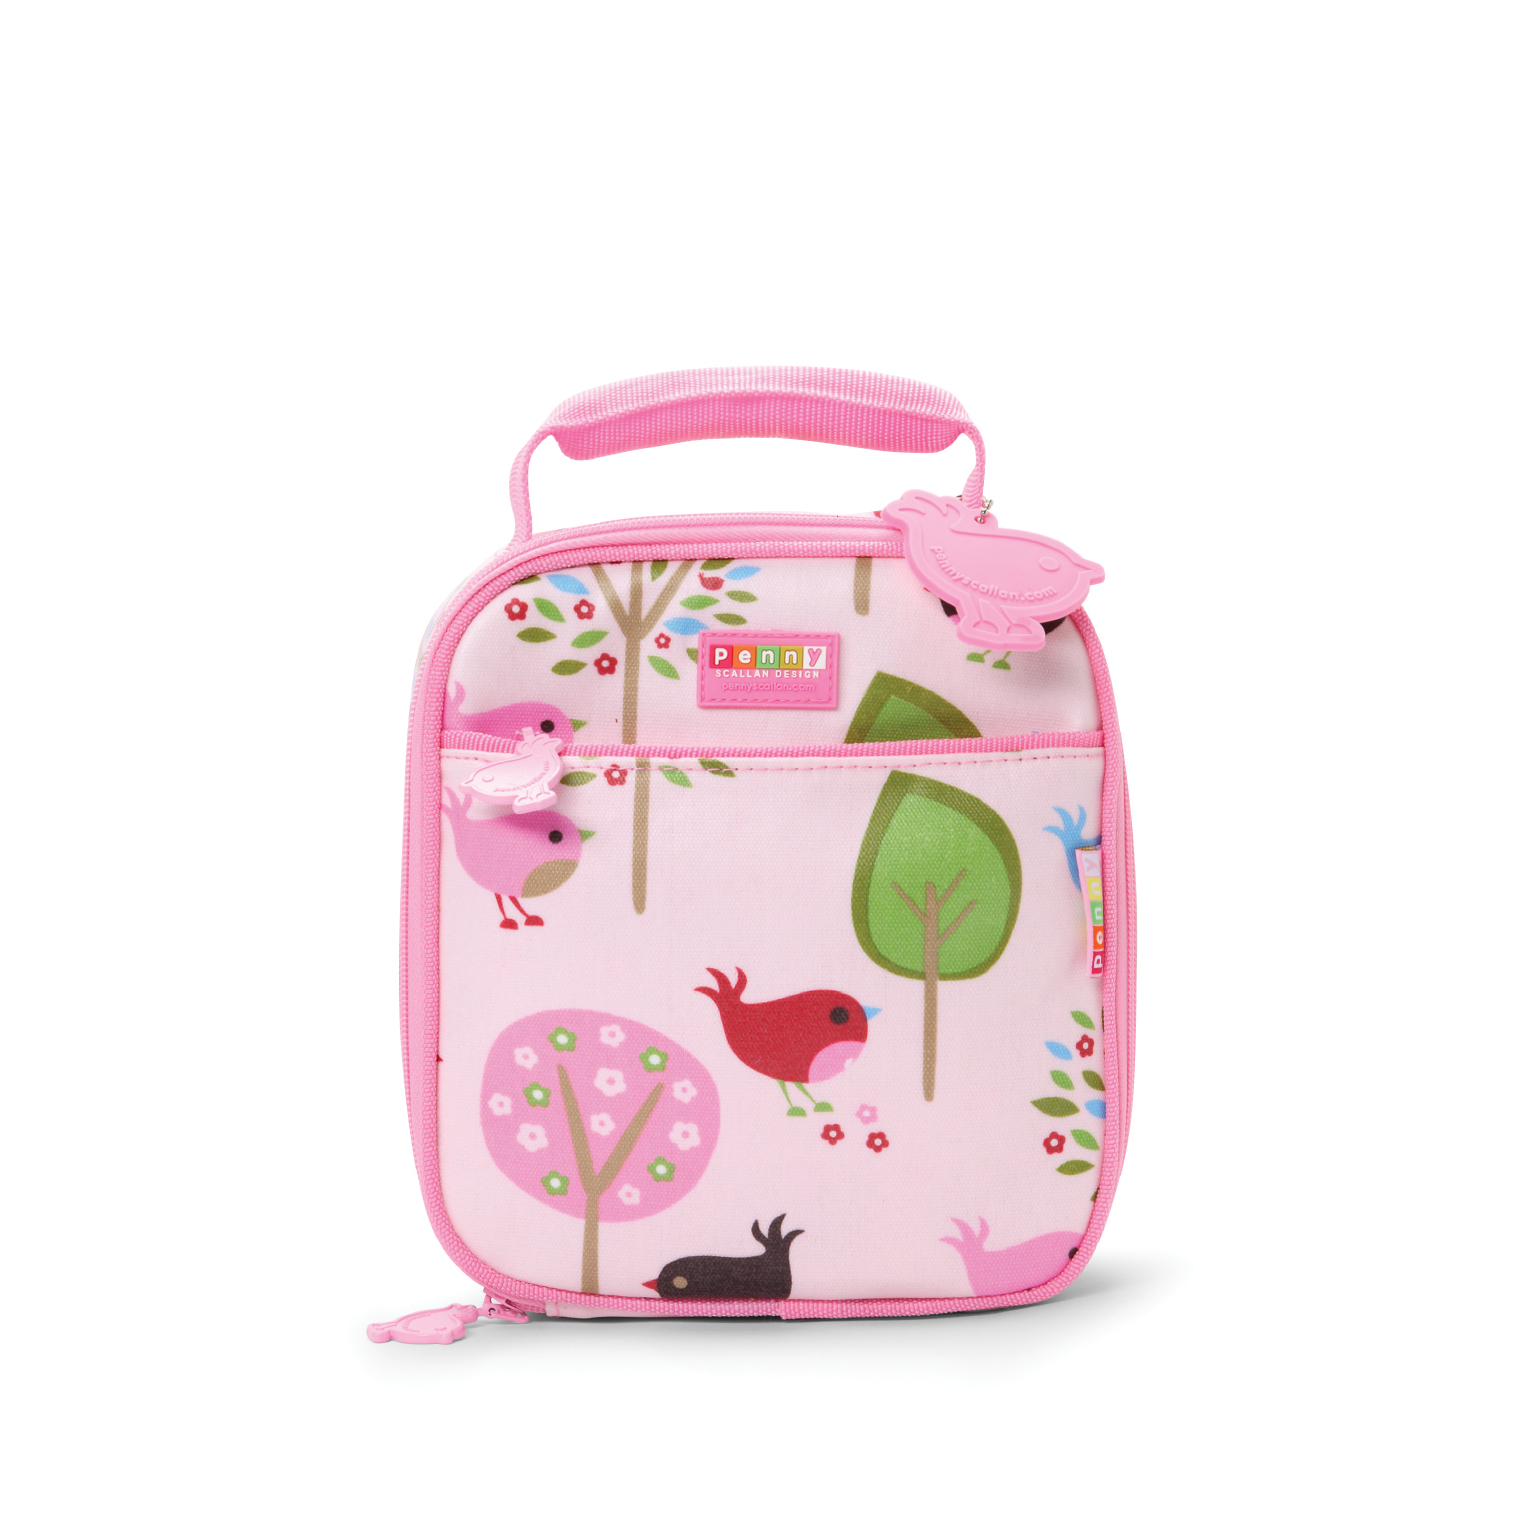 Chirpy Bird School Lunchbox image